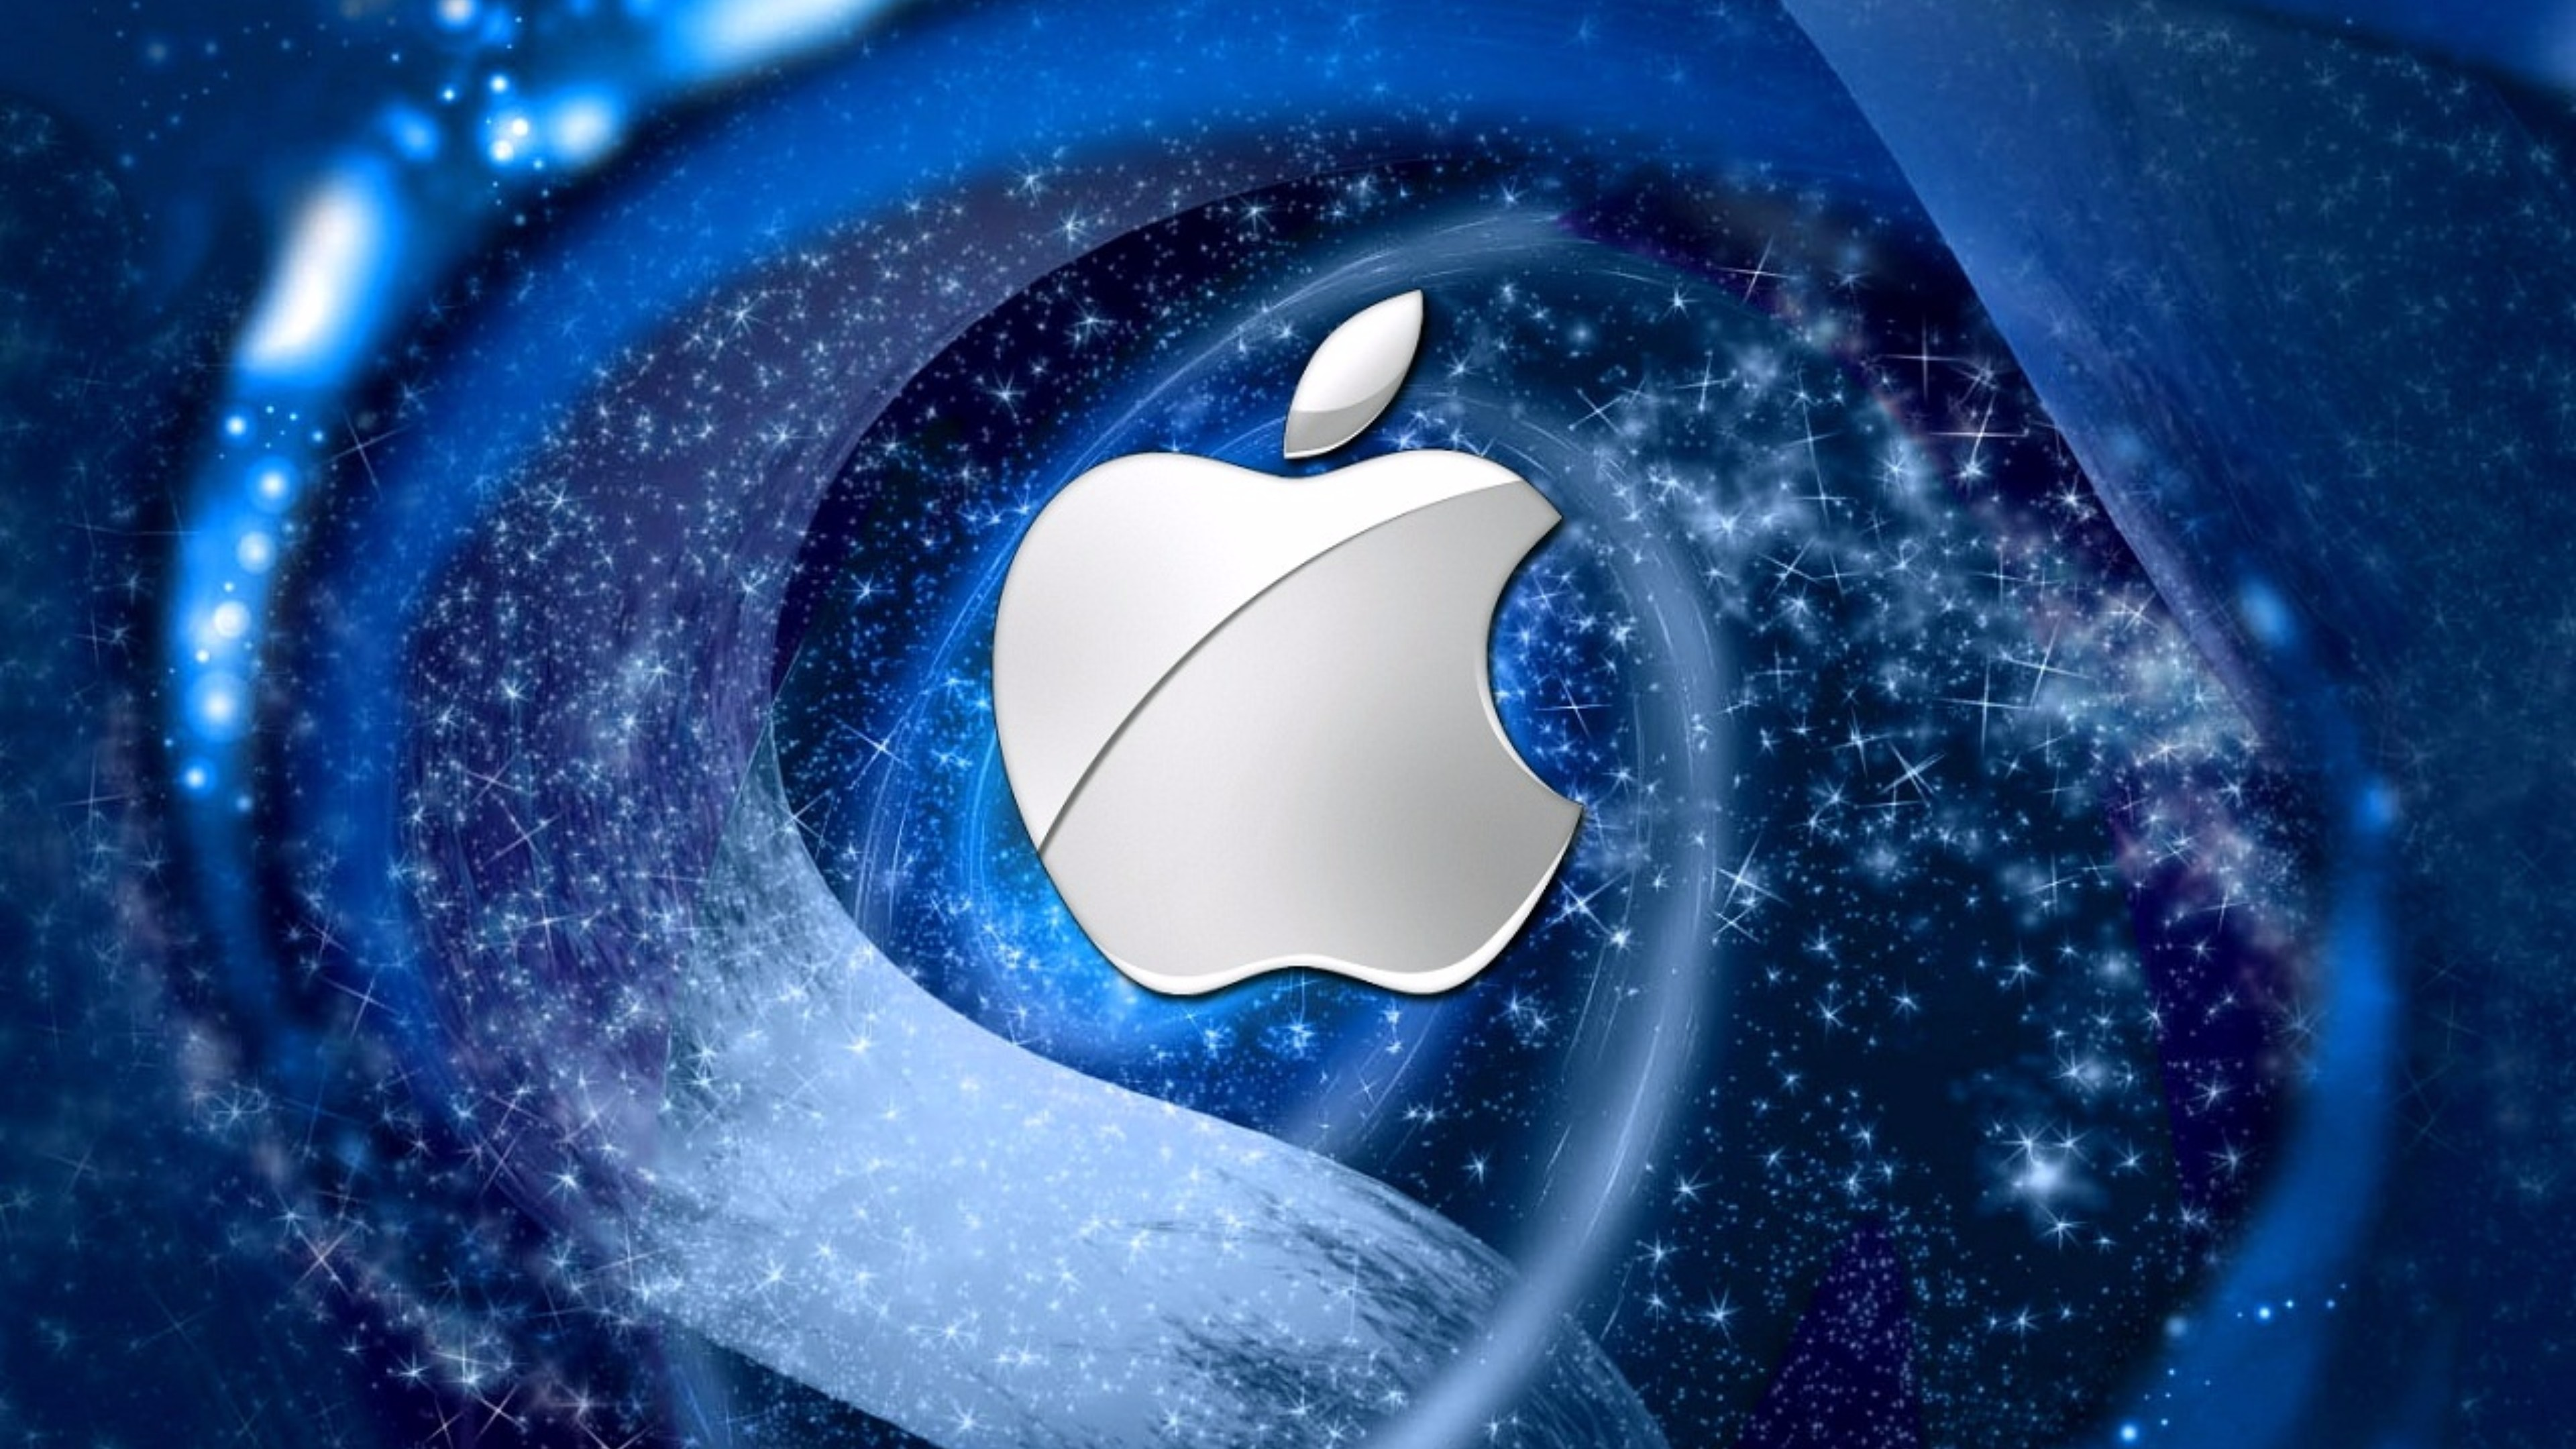 Creative Blue Apple Logo 4K Wallpaper